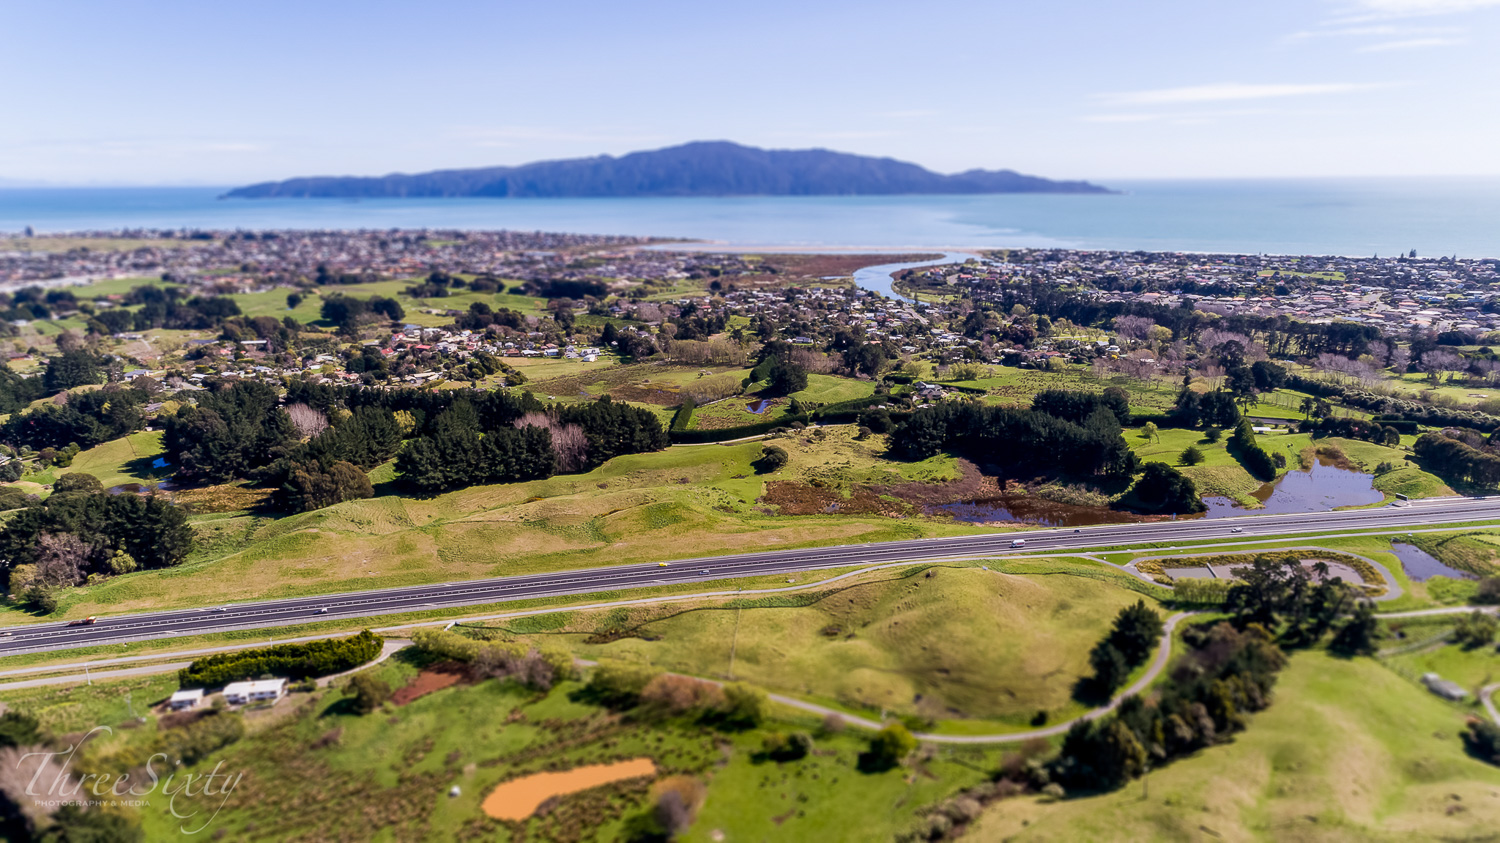 Kāpiti expressway - From the miniature Kāpiti series